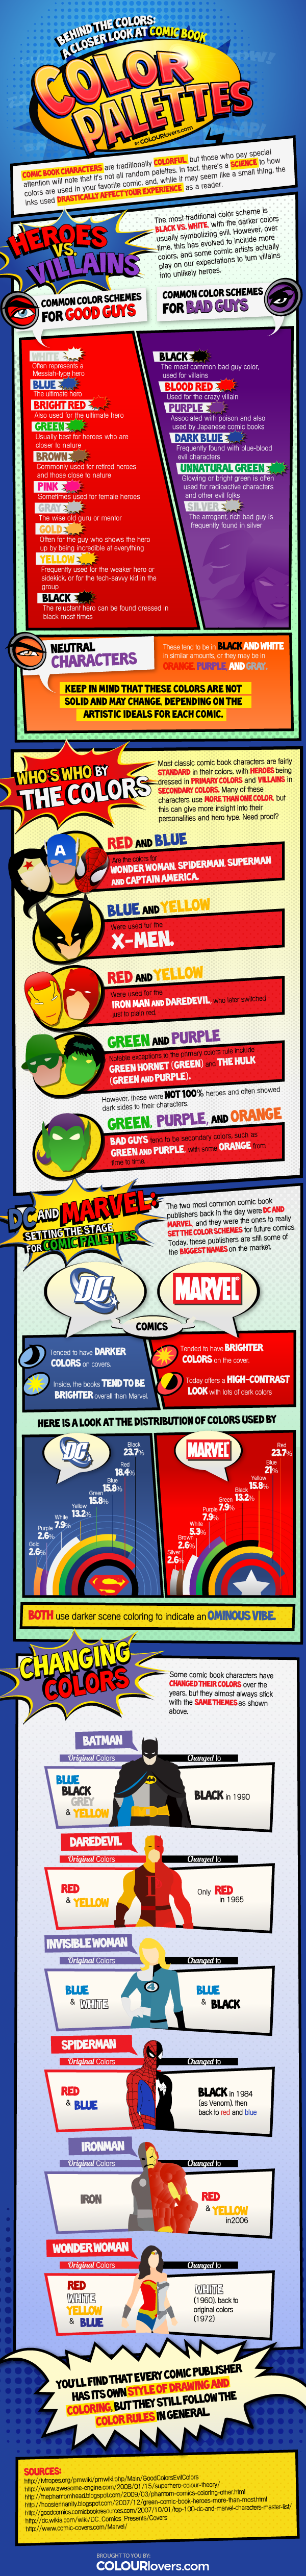 How Is The Color Of A Comic Book Character Decided?